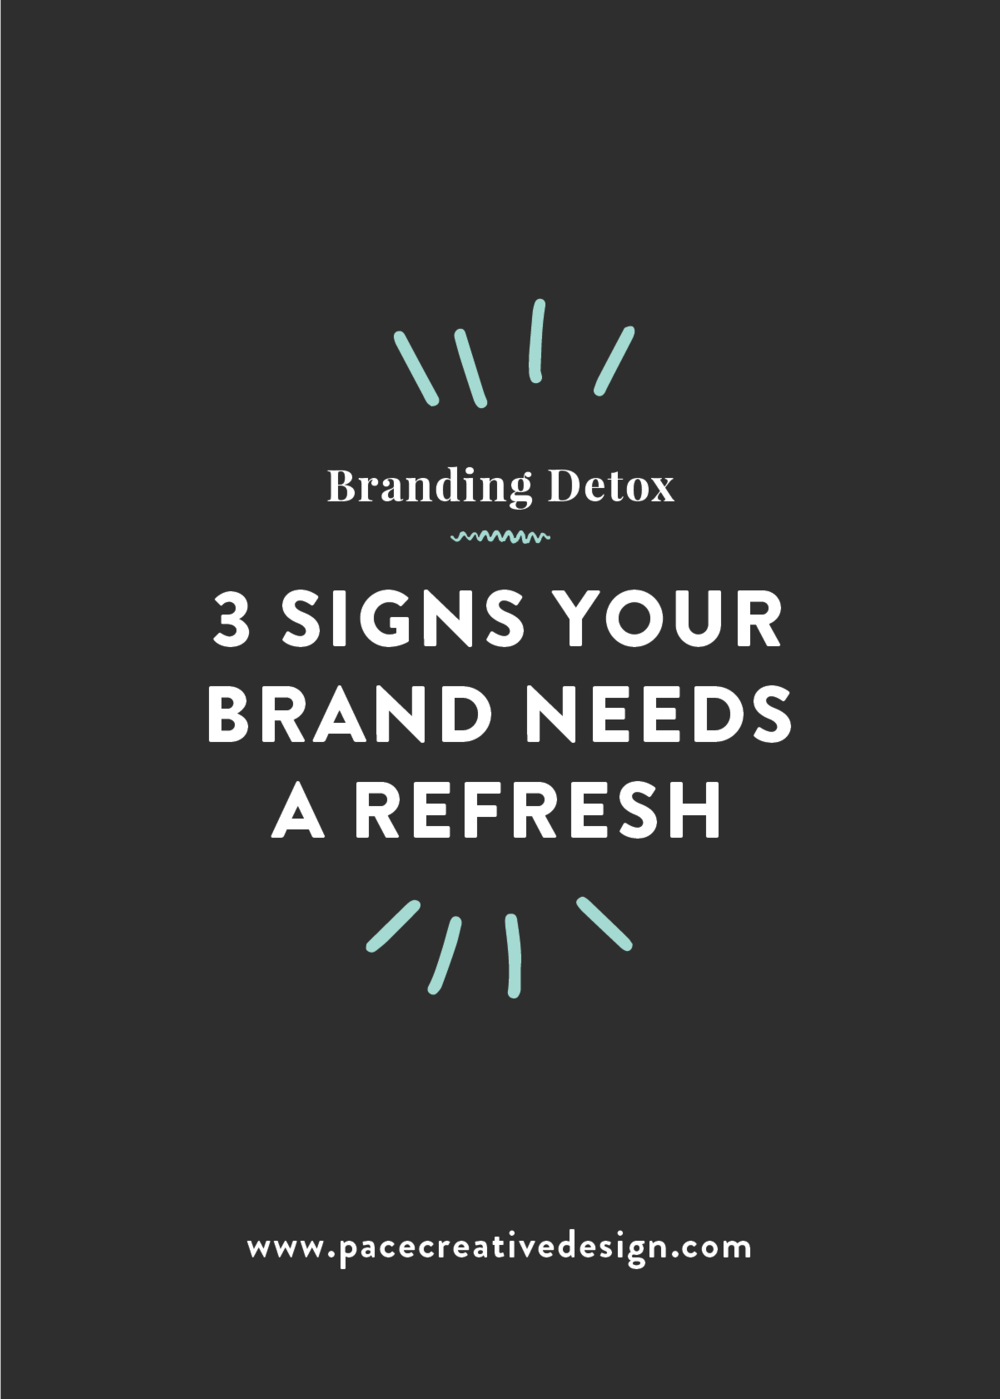 Branding Detox: 3 Signs Your Brand Needs a Refresh | Pace Creative Design Studio